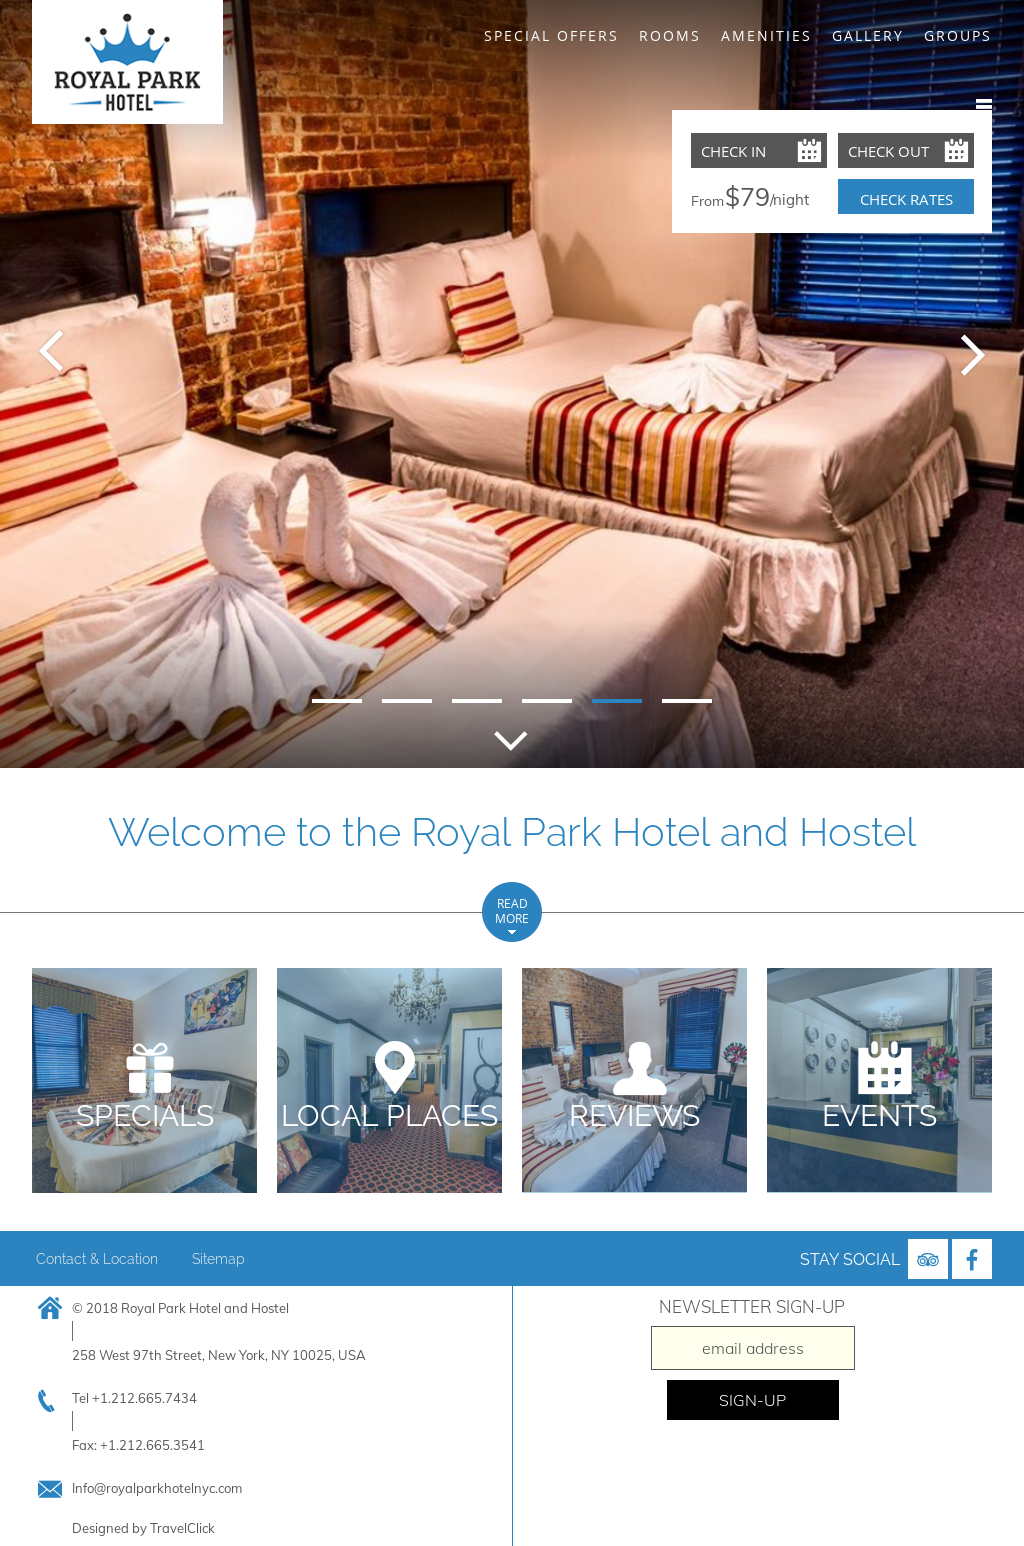 Royal Park Hotel Hostel S Competitors Revenue Number Of Employees Funding Acquisitions News Owler Company Profile